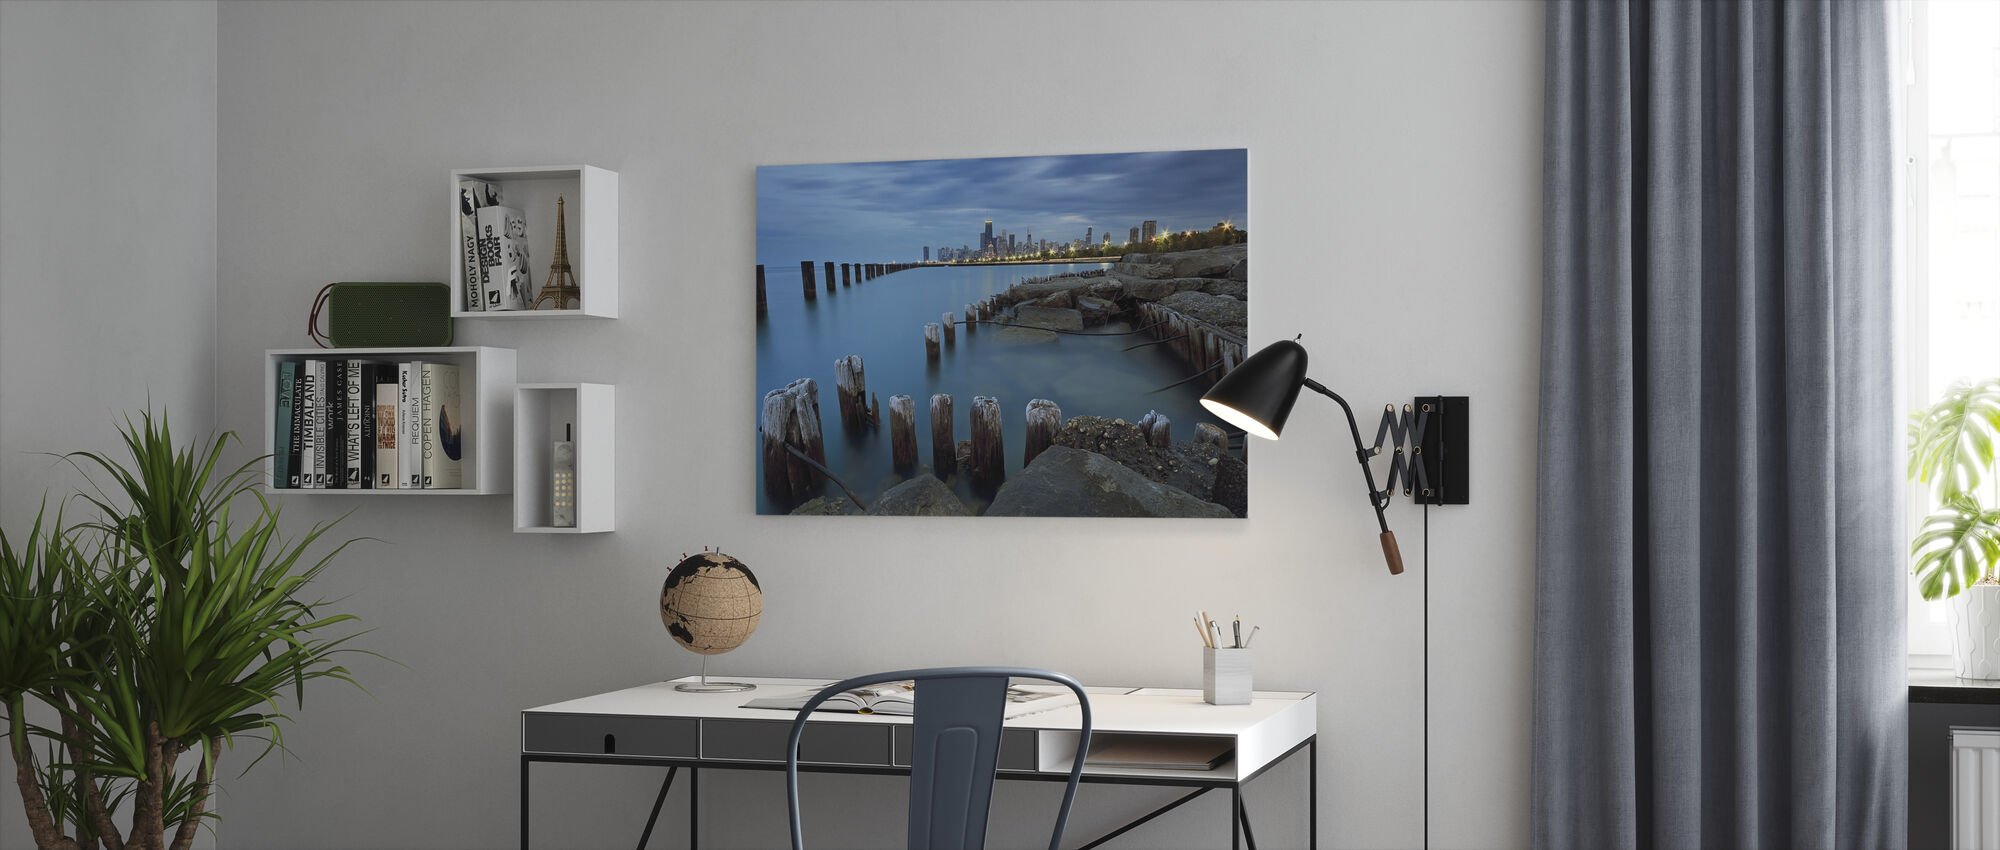 Pillars - Canvas print - Office